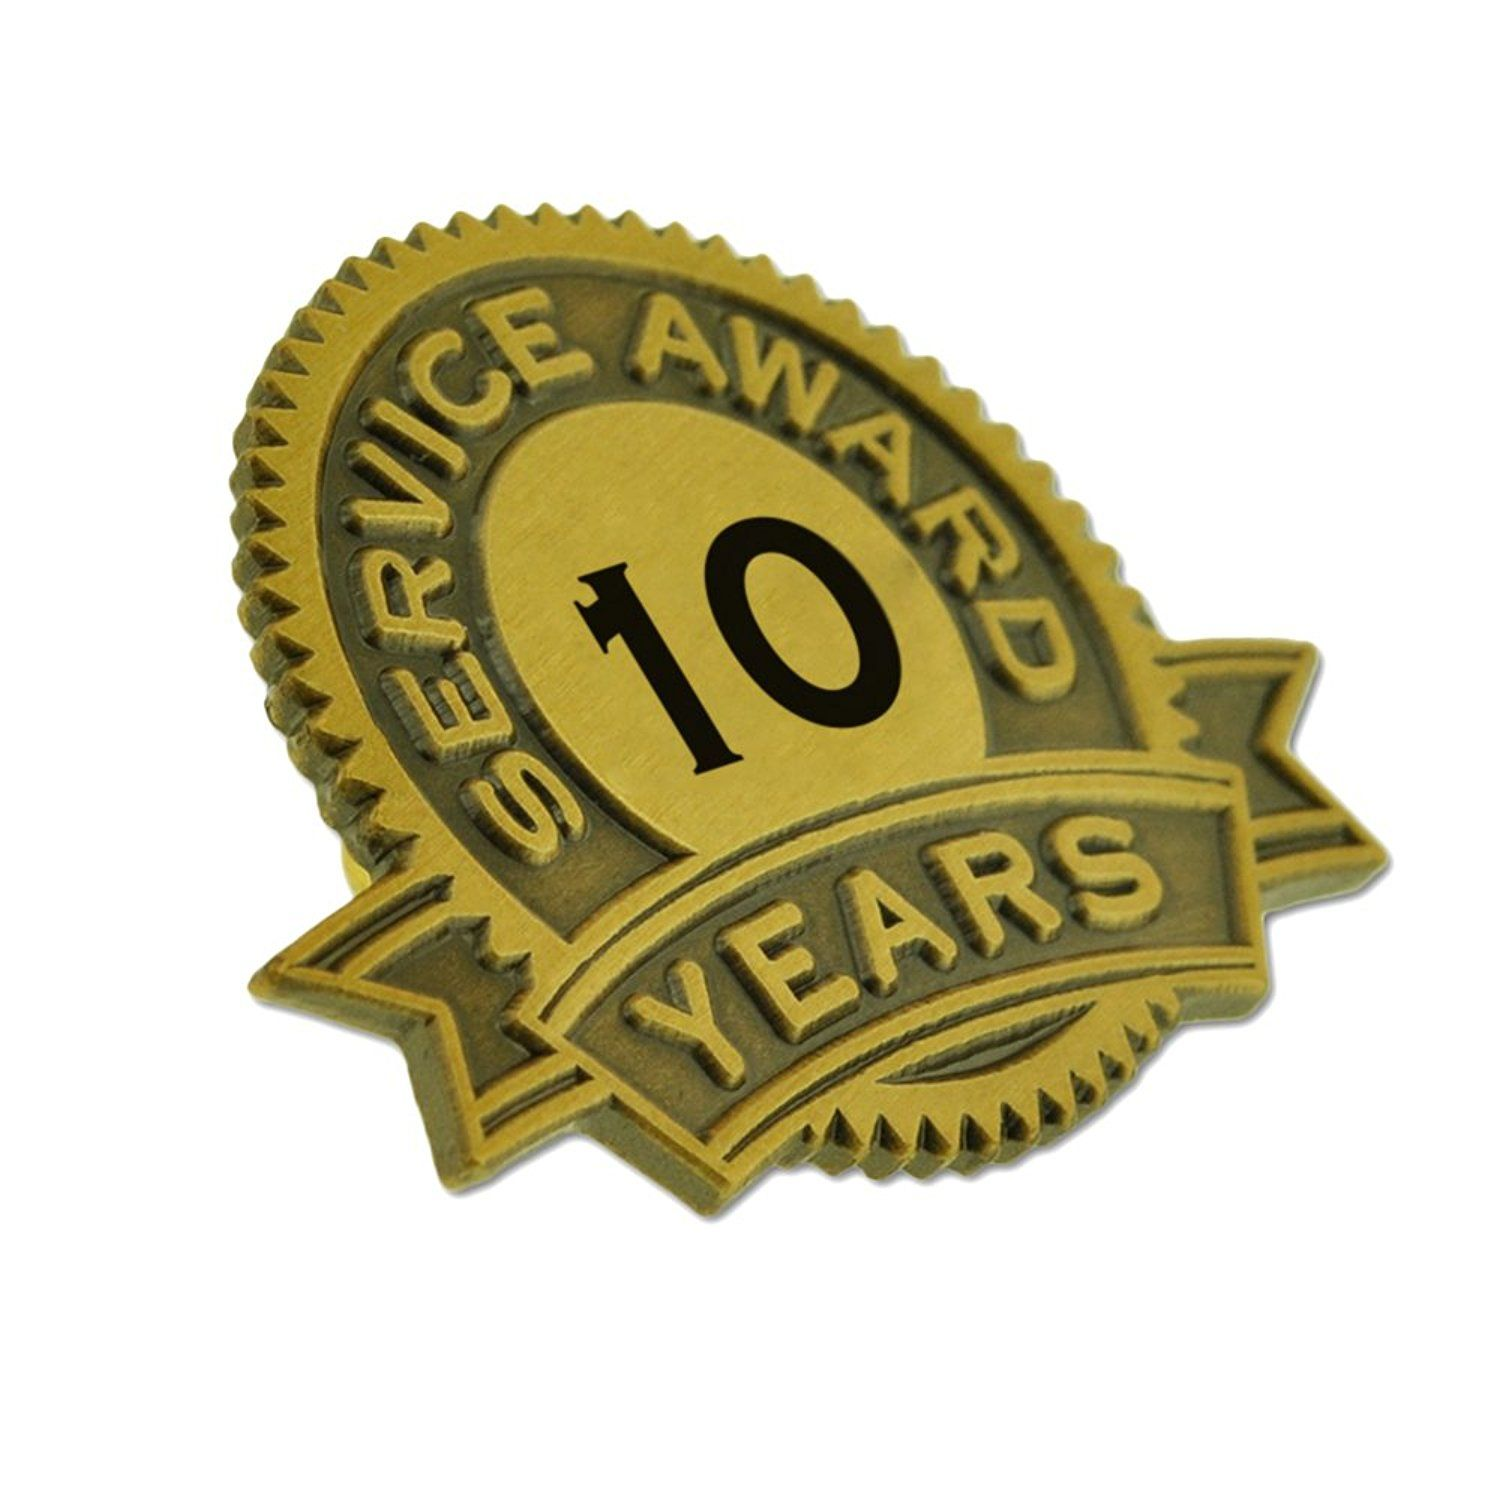 Pinmart S 10 Years Of Service Award Lapel Pin Check Out This Great Product This Is An Affiliate Link Jewelrydesign Lapel Pins Service Awards Brooch Pin